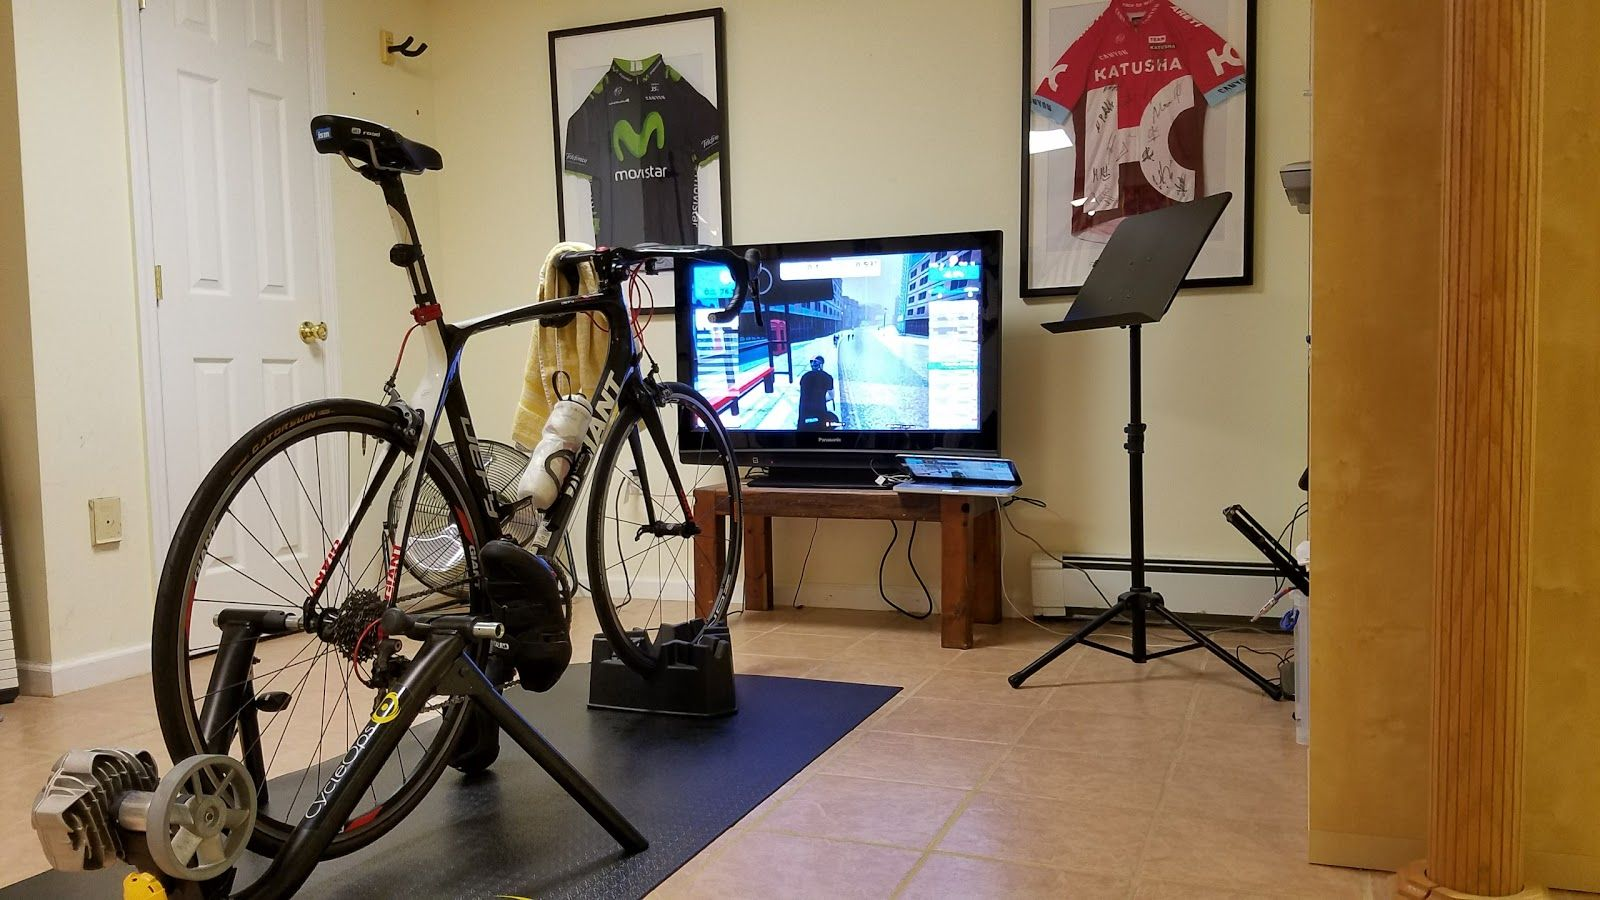 Pin on zwift set-up